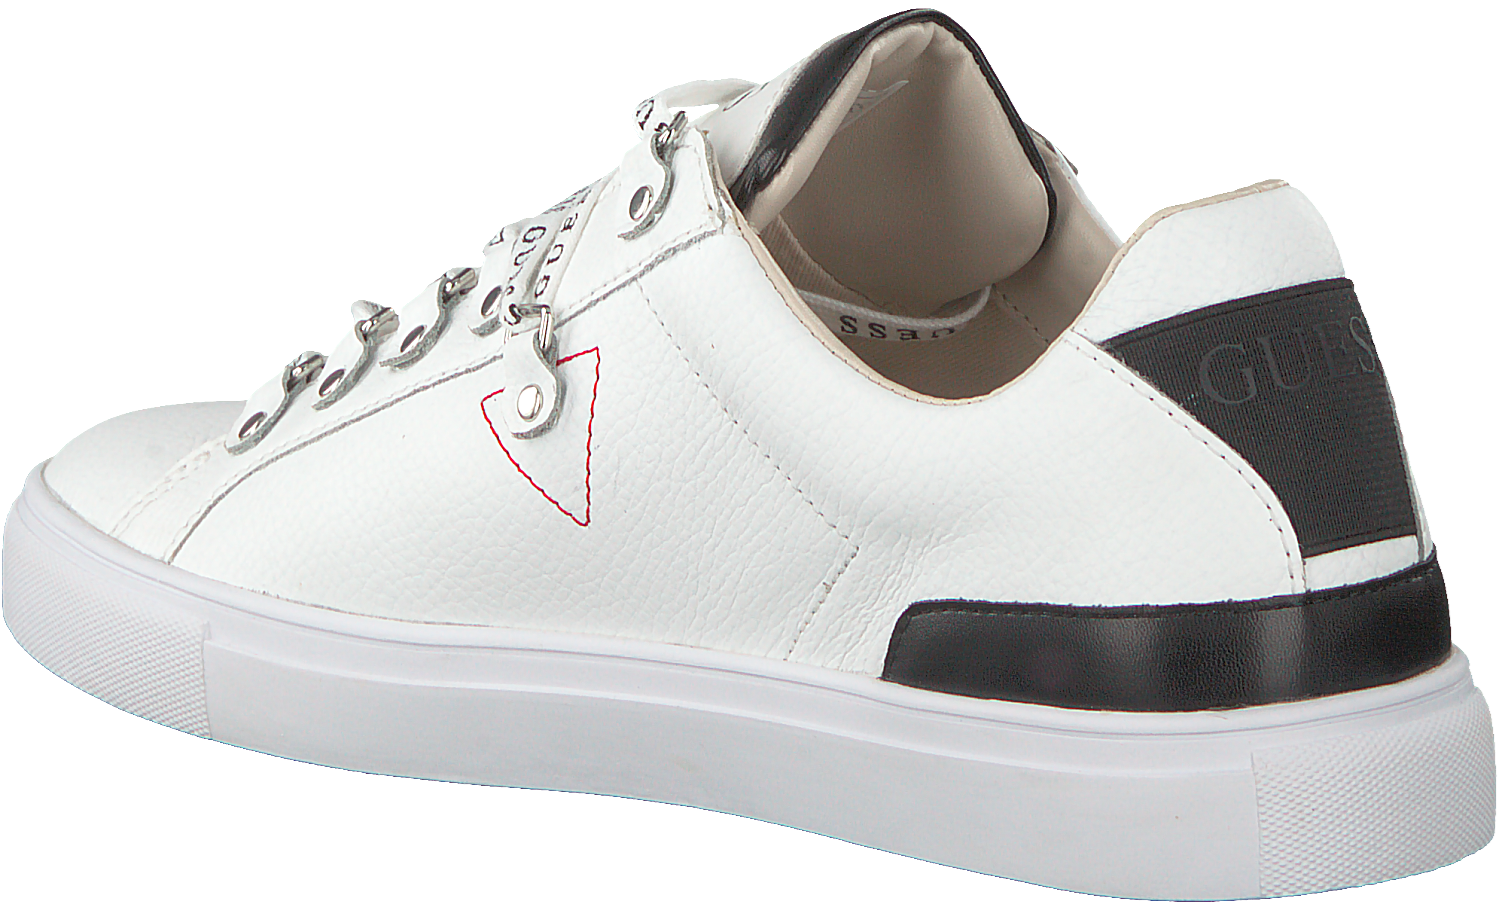 aa103357f87 Witte GUESS Sneakers BARRY. GUESS. Previous